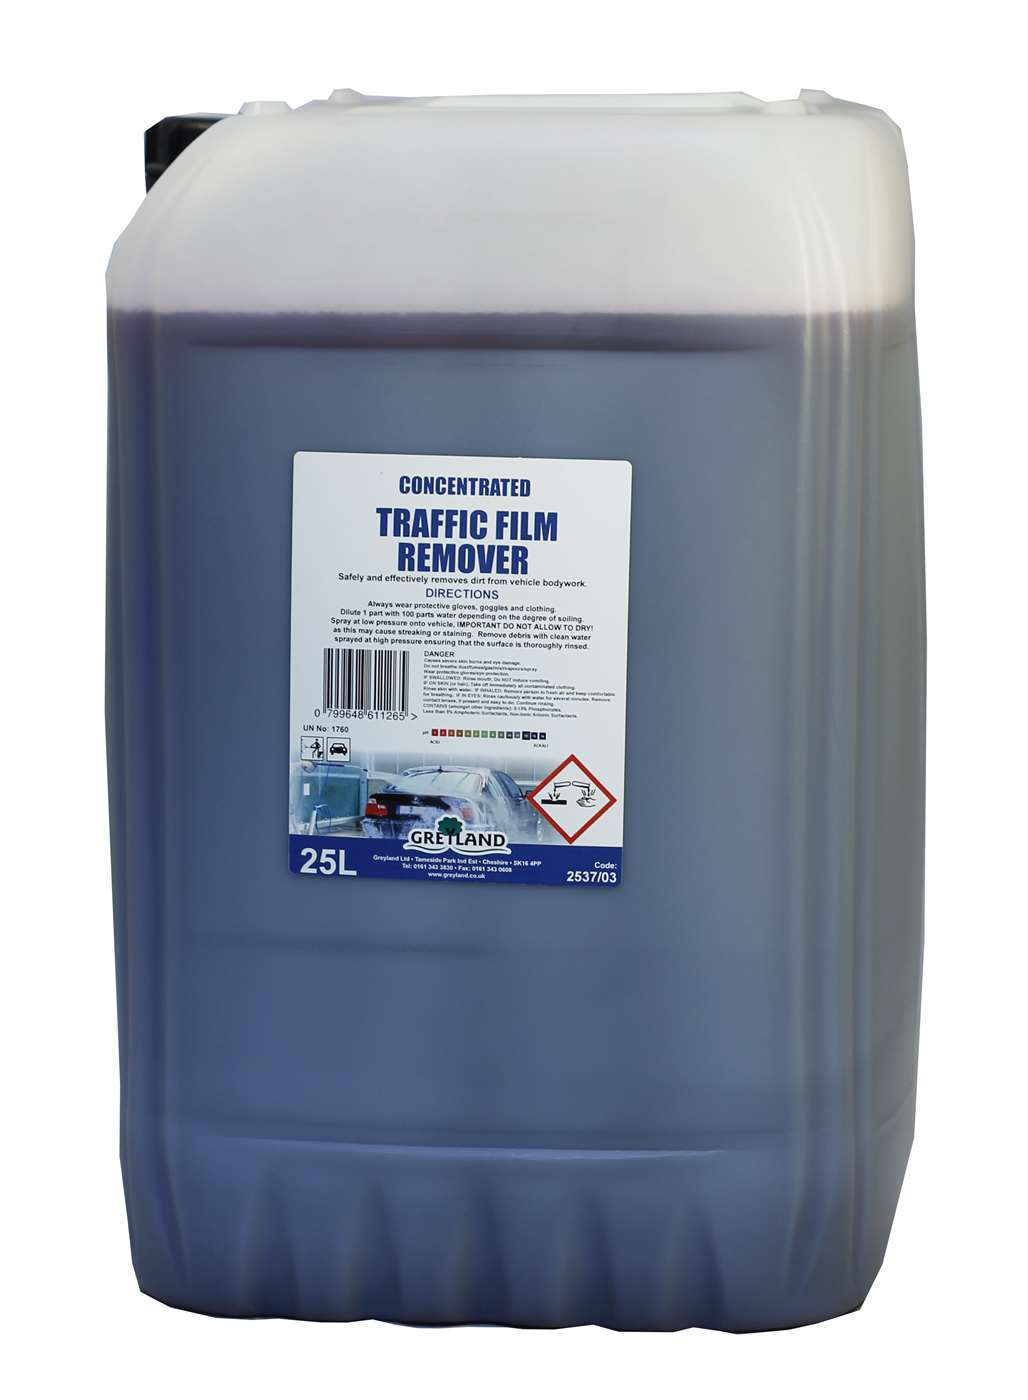 Concentrated Traffic Film Remover